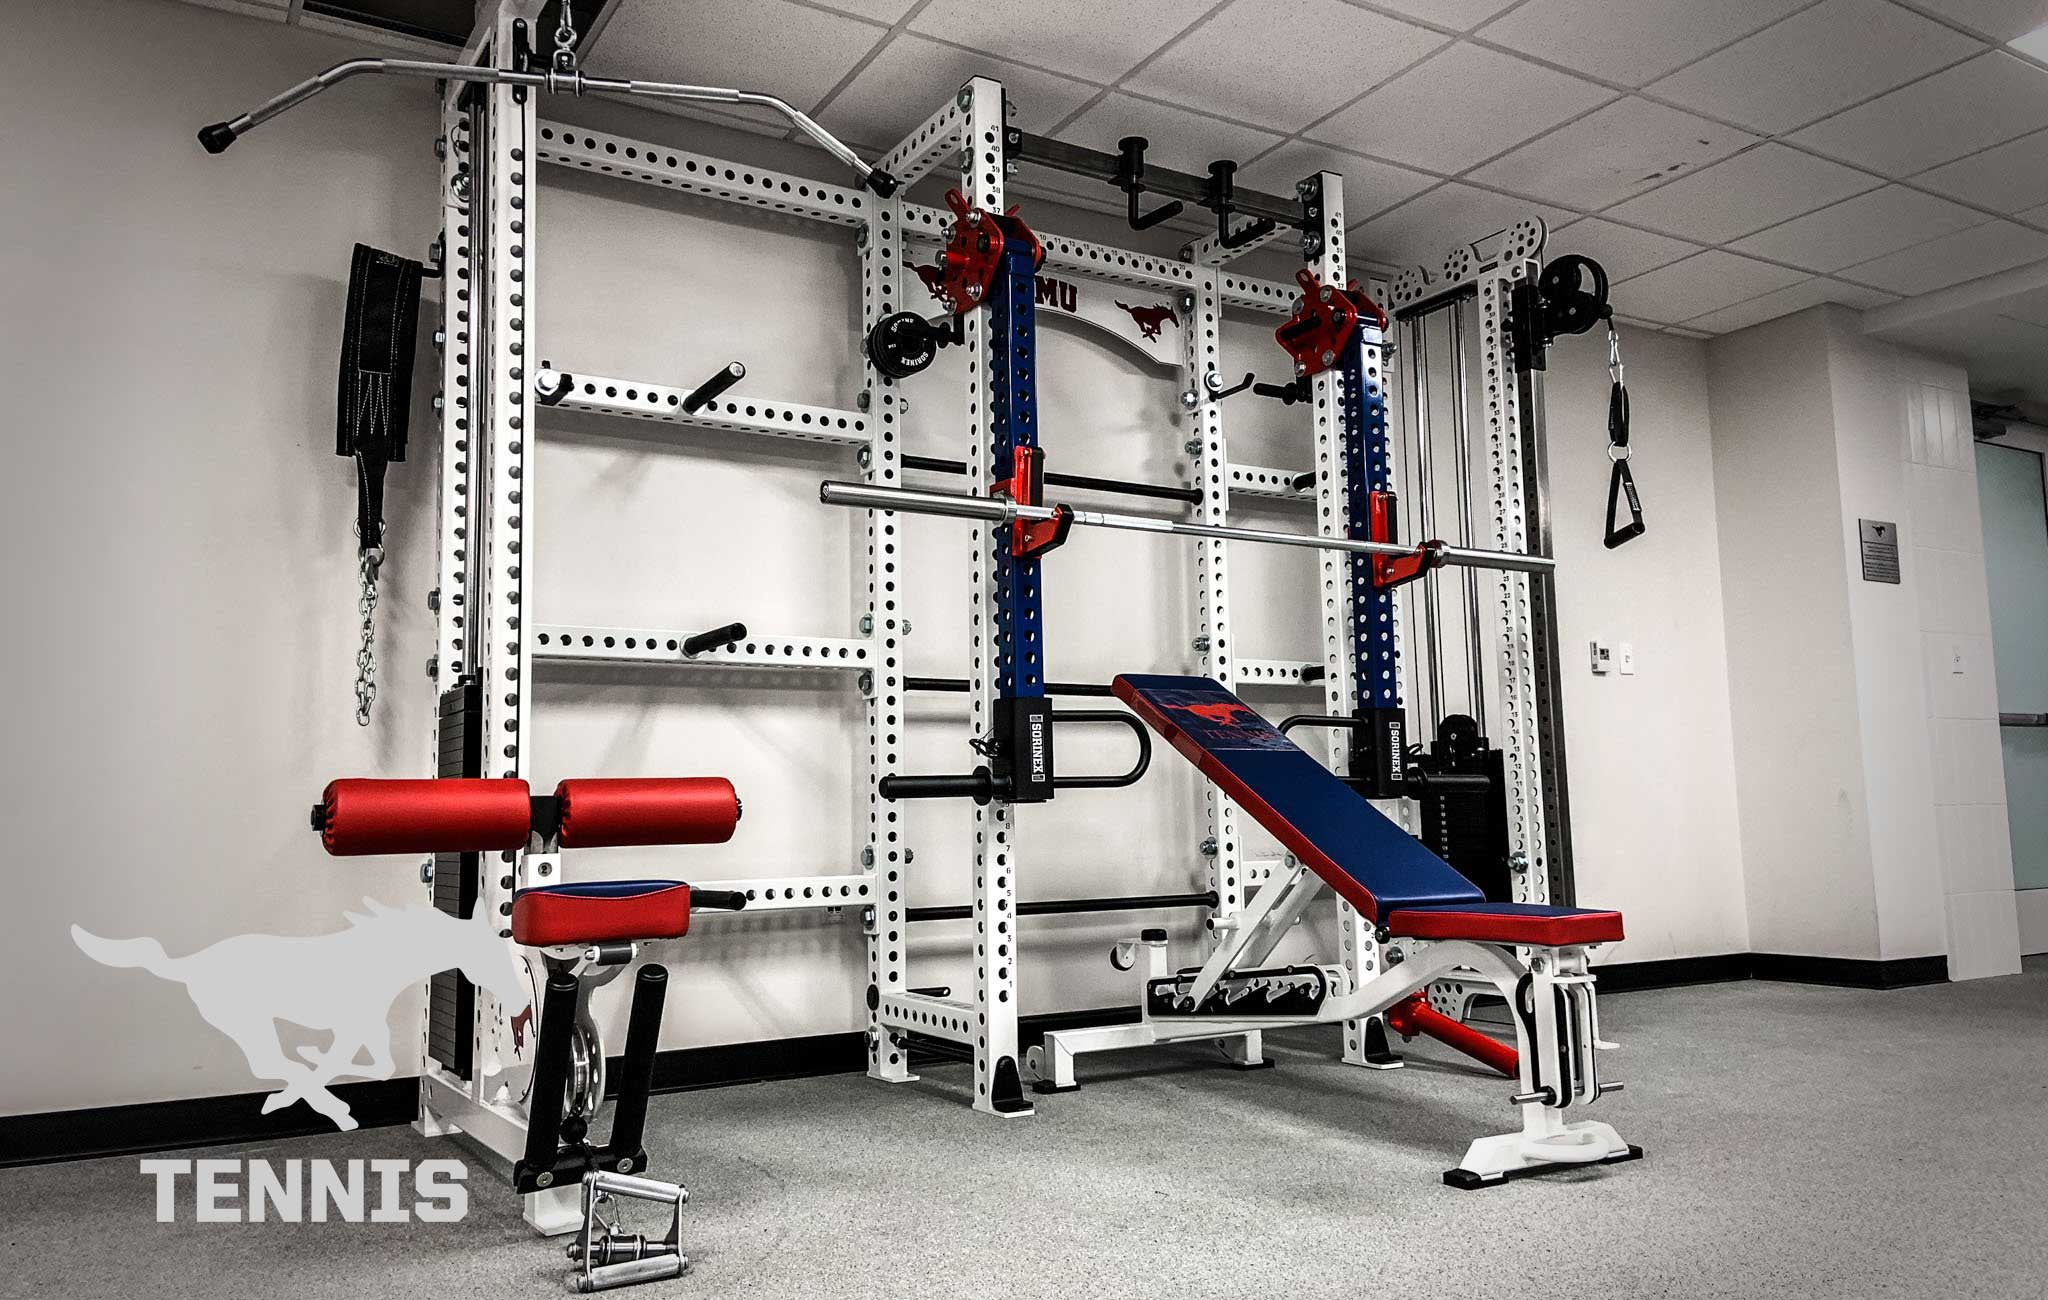 SMU tennis Sorinex strength and conditioning facility